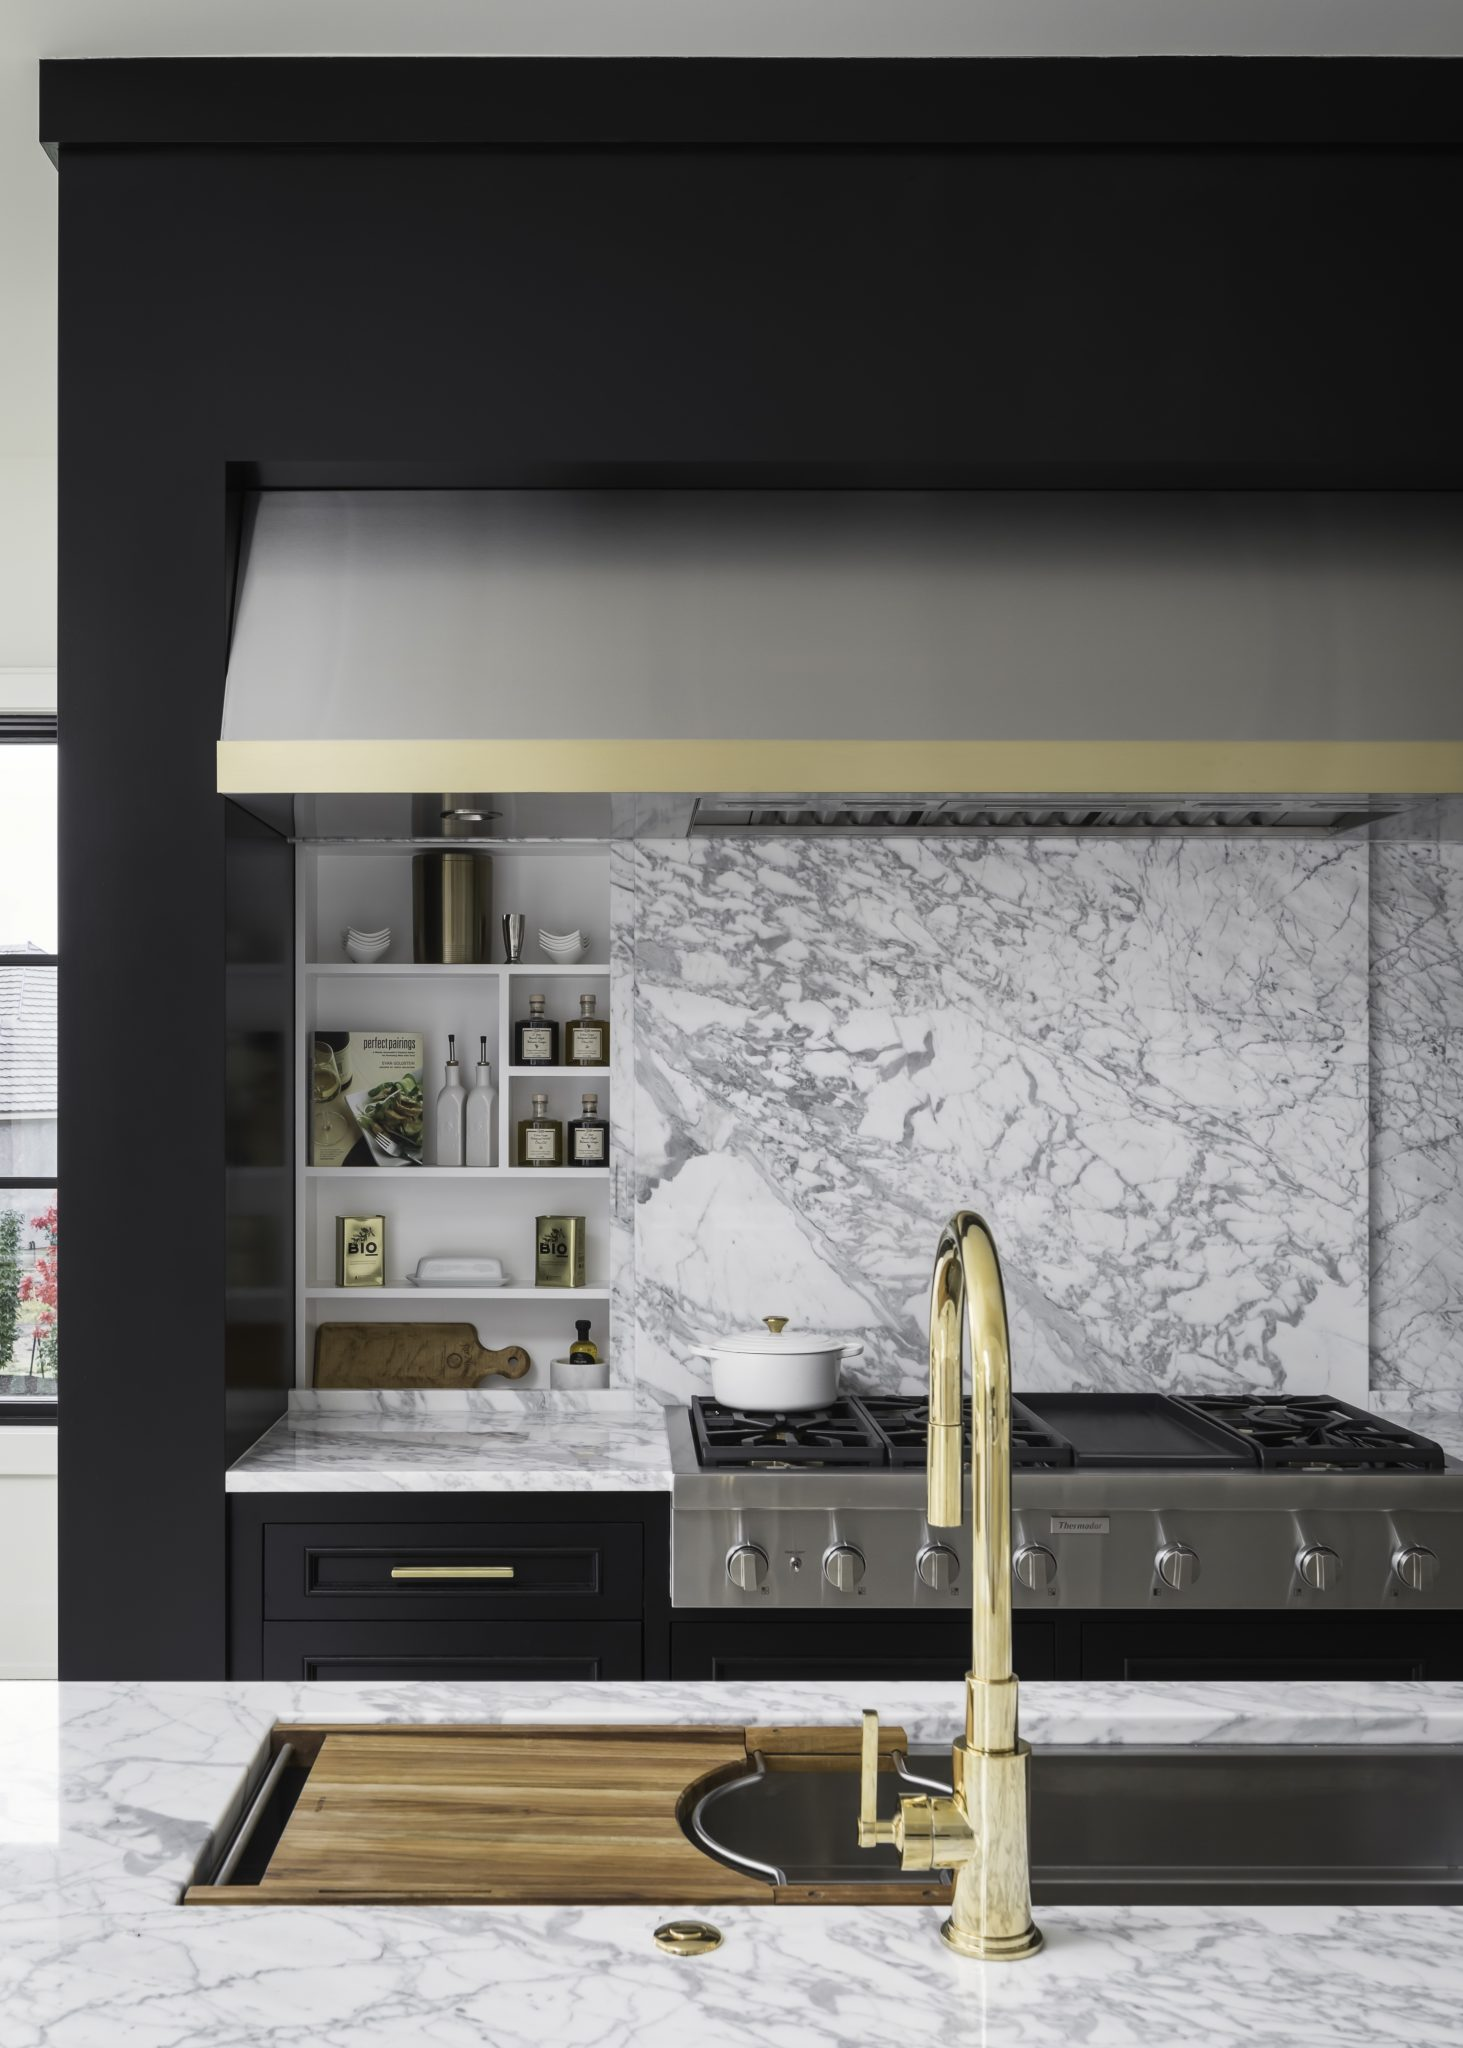 Modern stove hood with black cabinetry